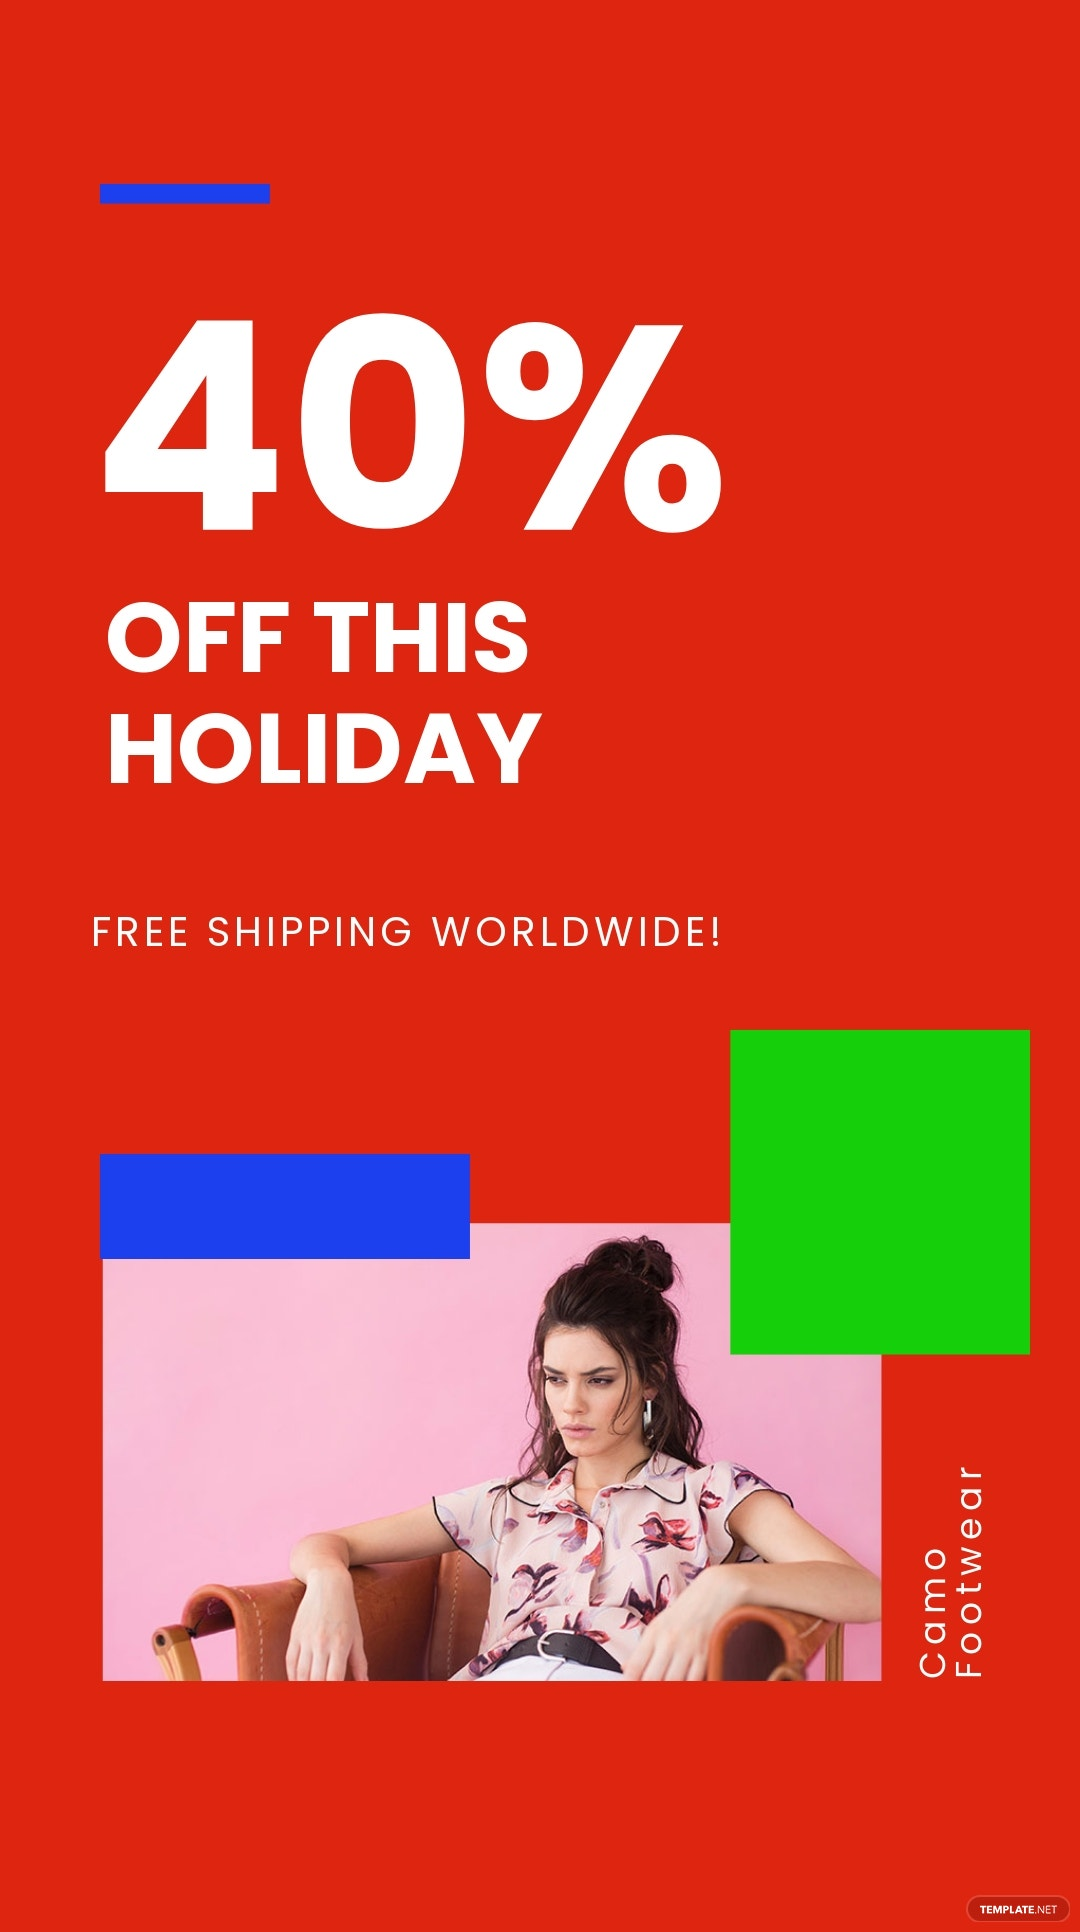 Free Holiday Offer Sale Instagram Story Template